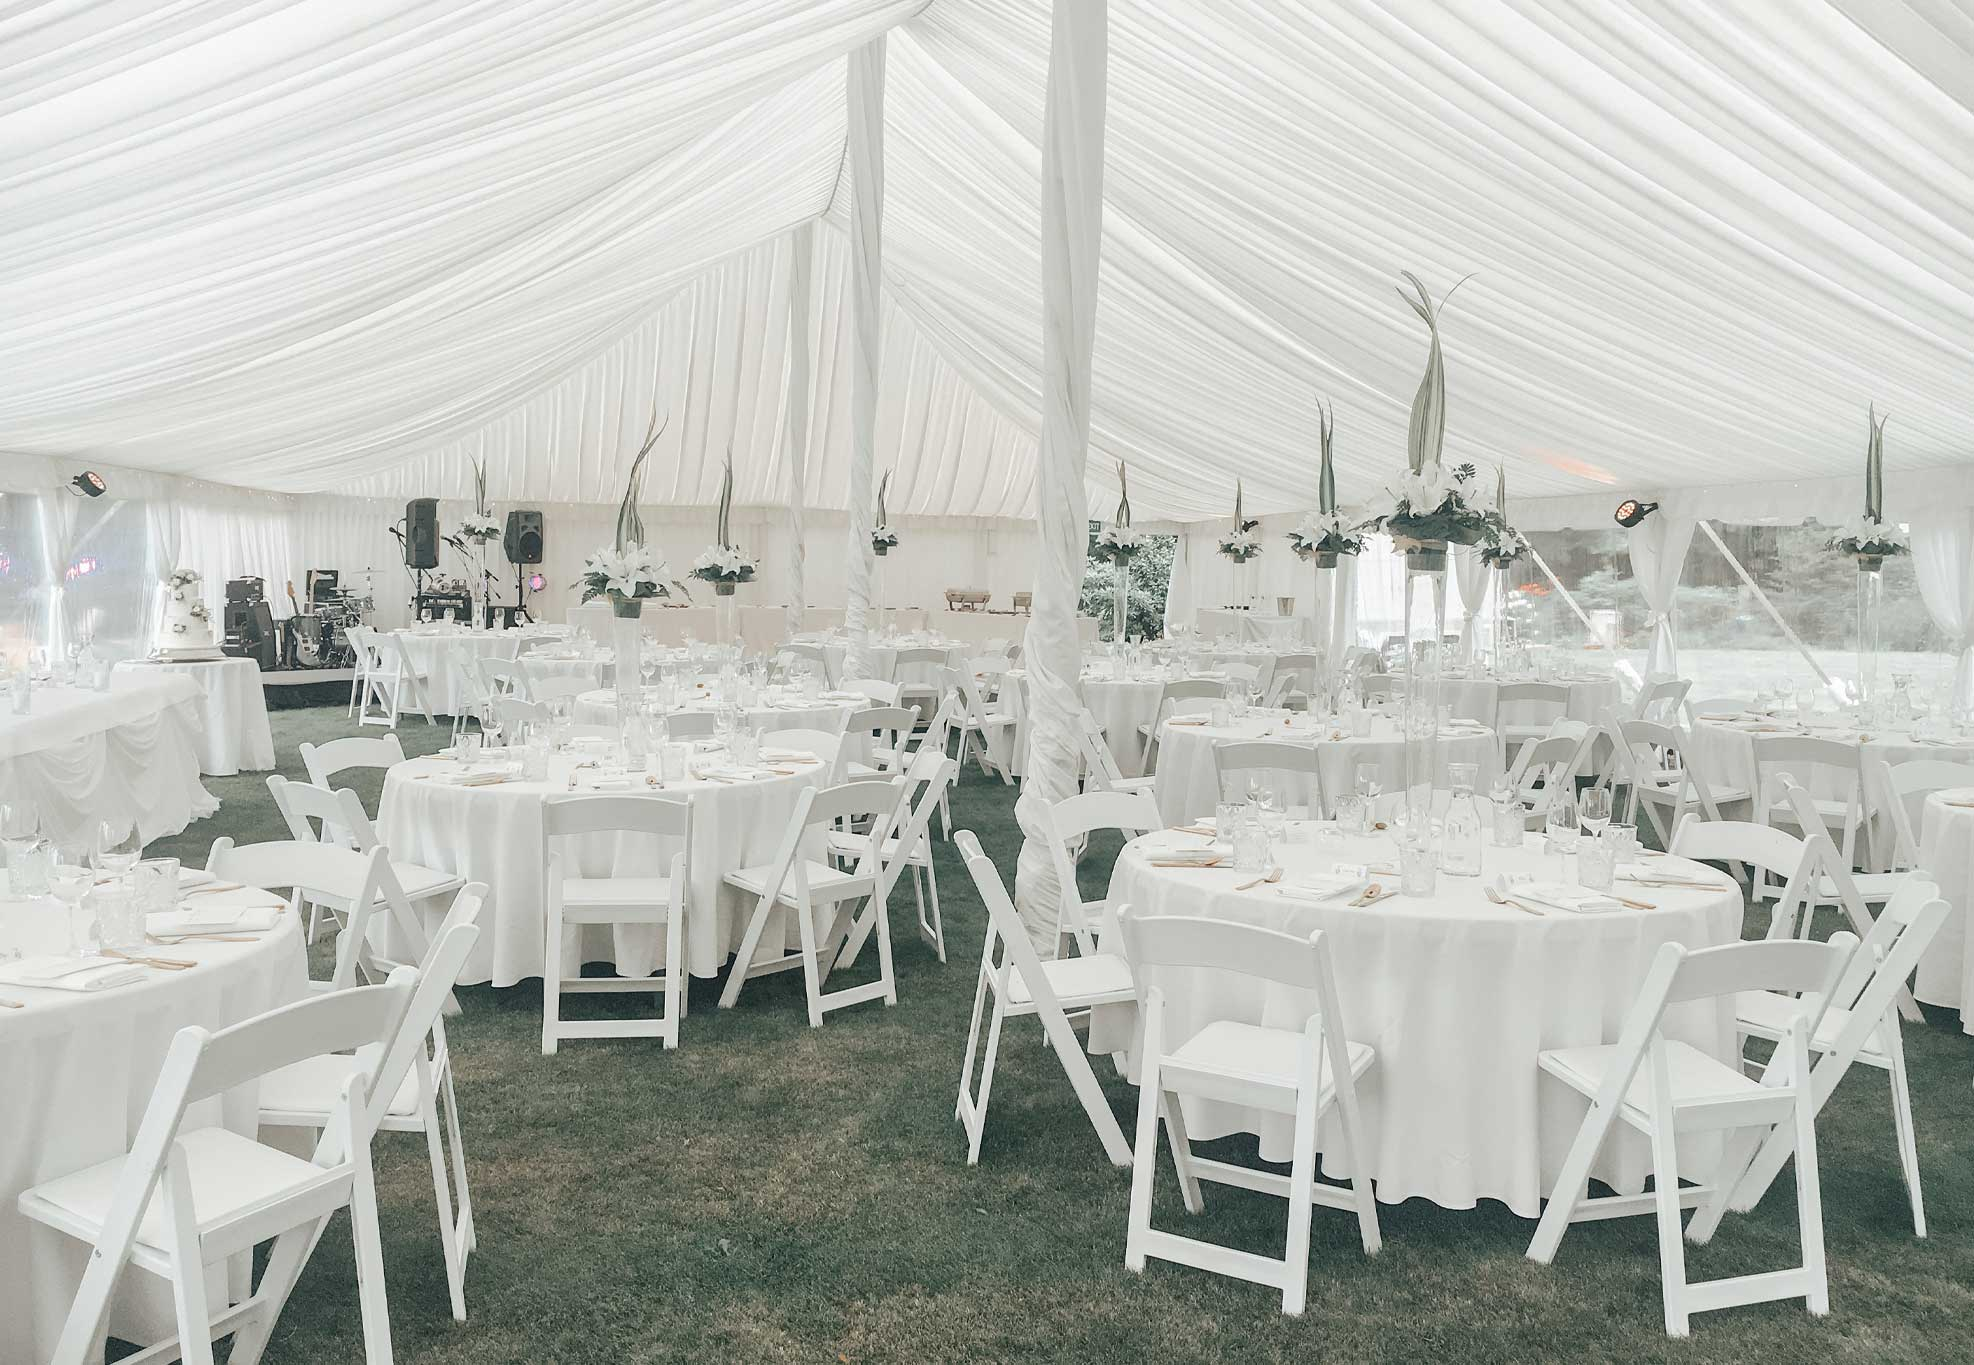 silk-estate-marquee-weddings-and-events-styling-and-hire-furniture-chairs-bella-folding-1